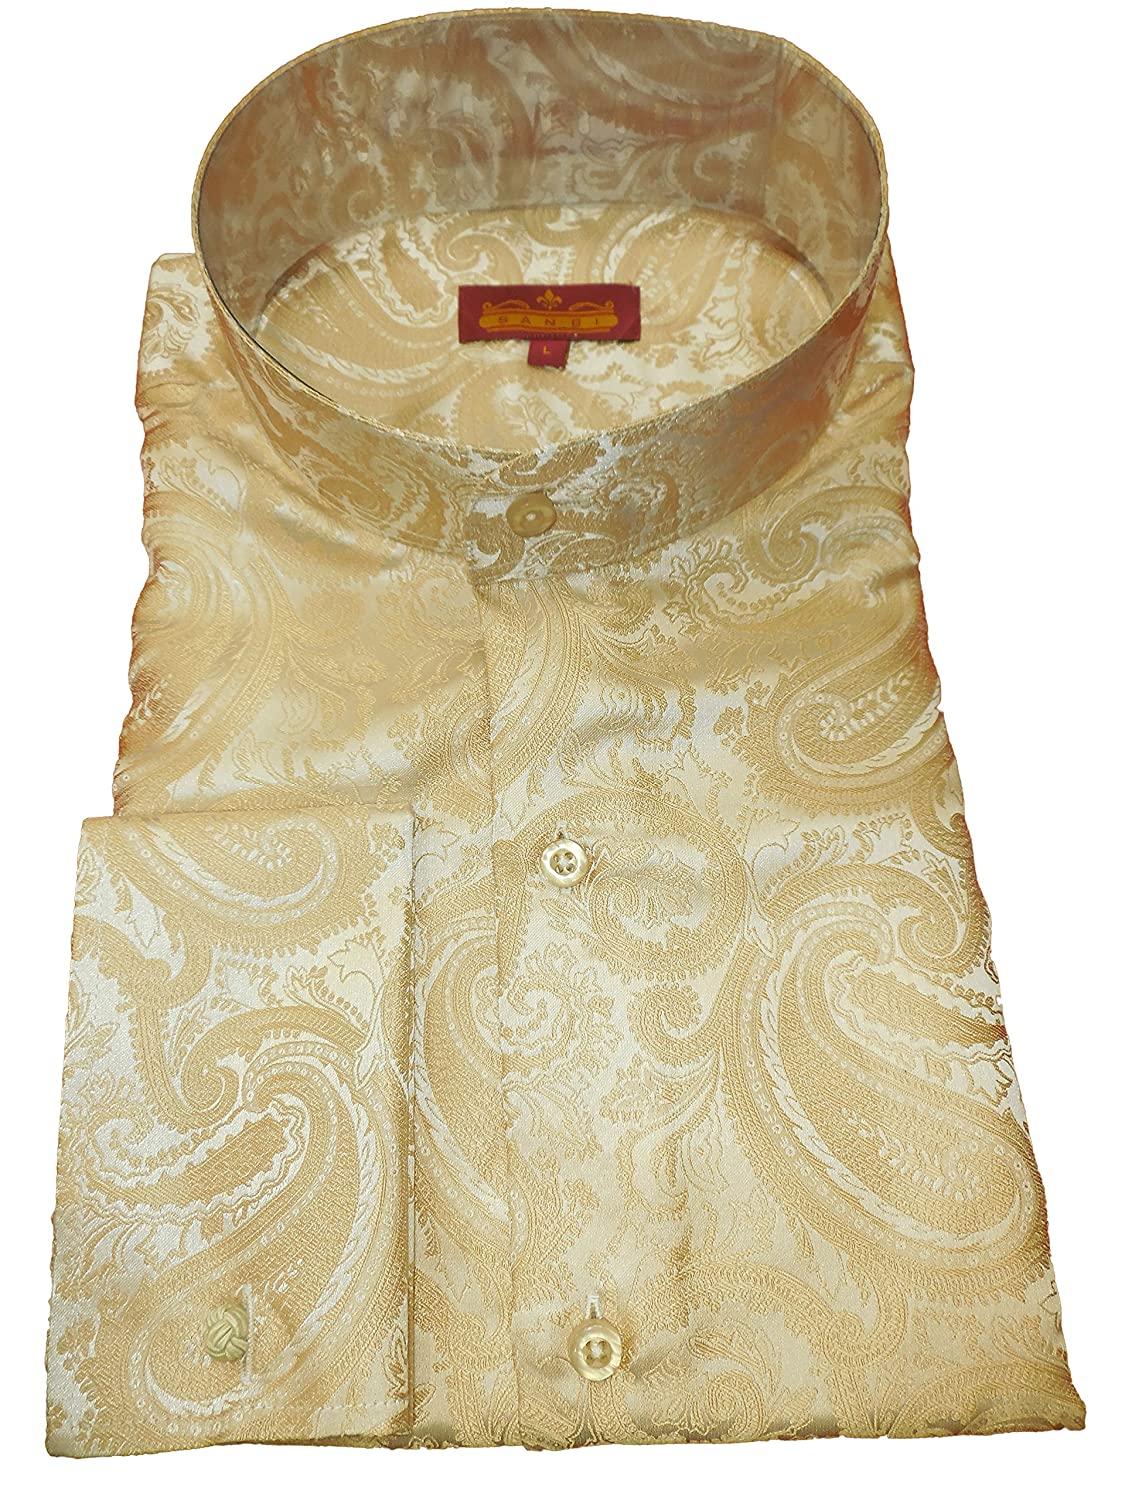 Sangi 1018 Mens Sophisticated Light Gold Paisley Tall Victorian